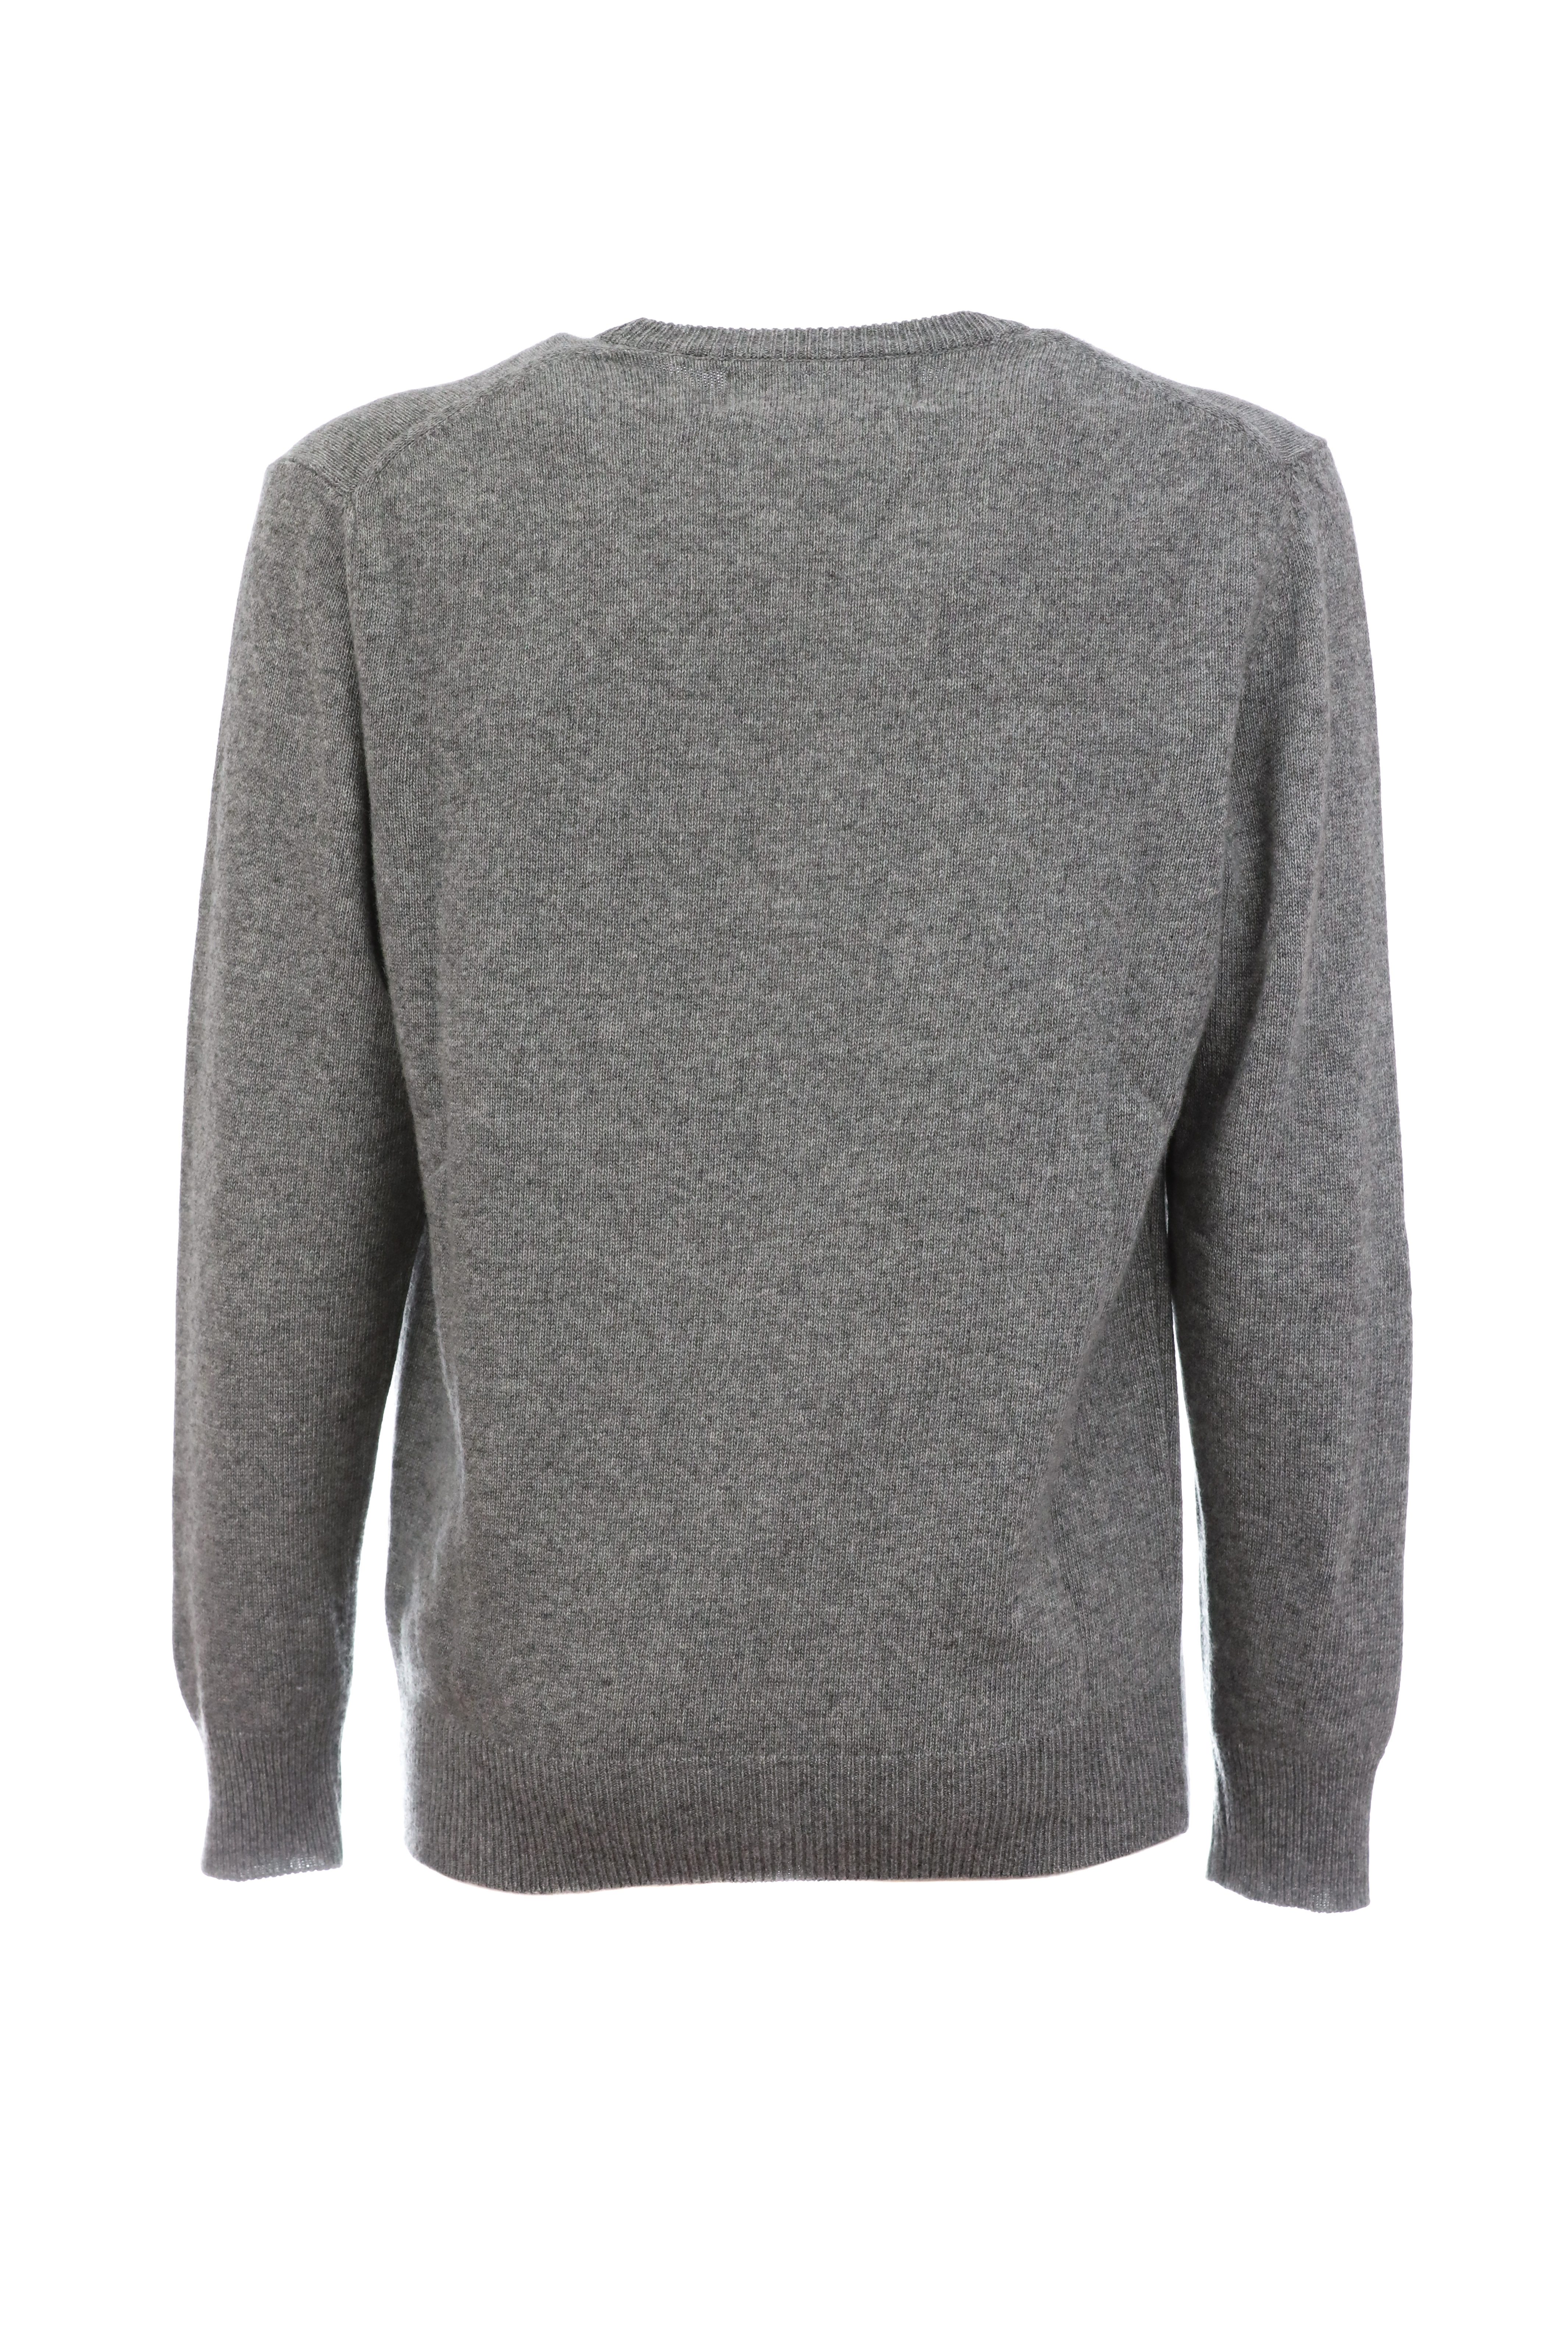 MC2  SAINT BARTH | Knitwear | HERONANGN1M